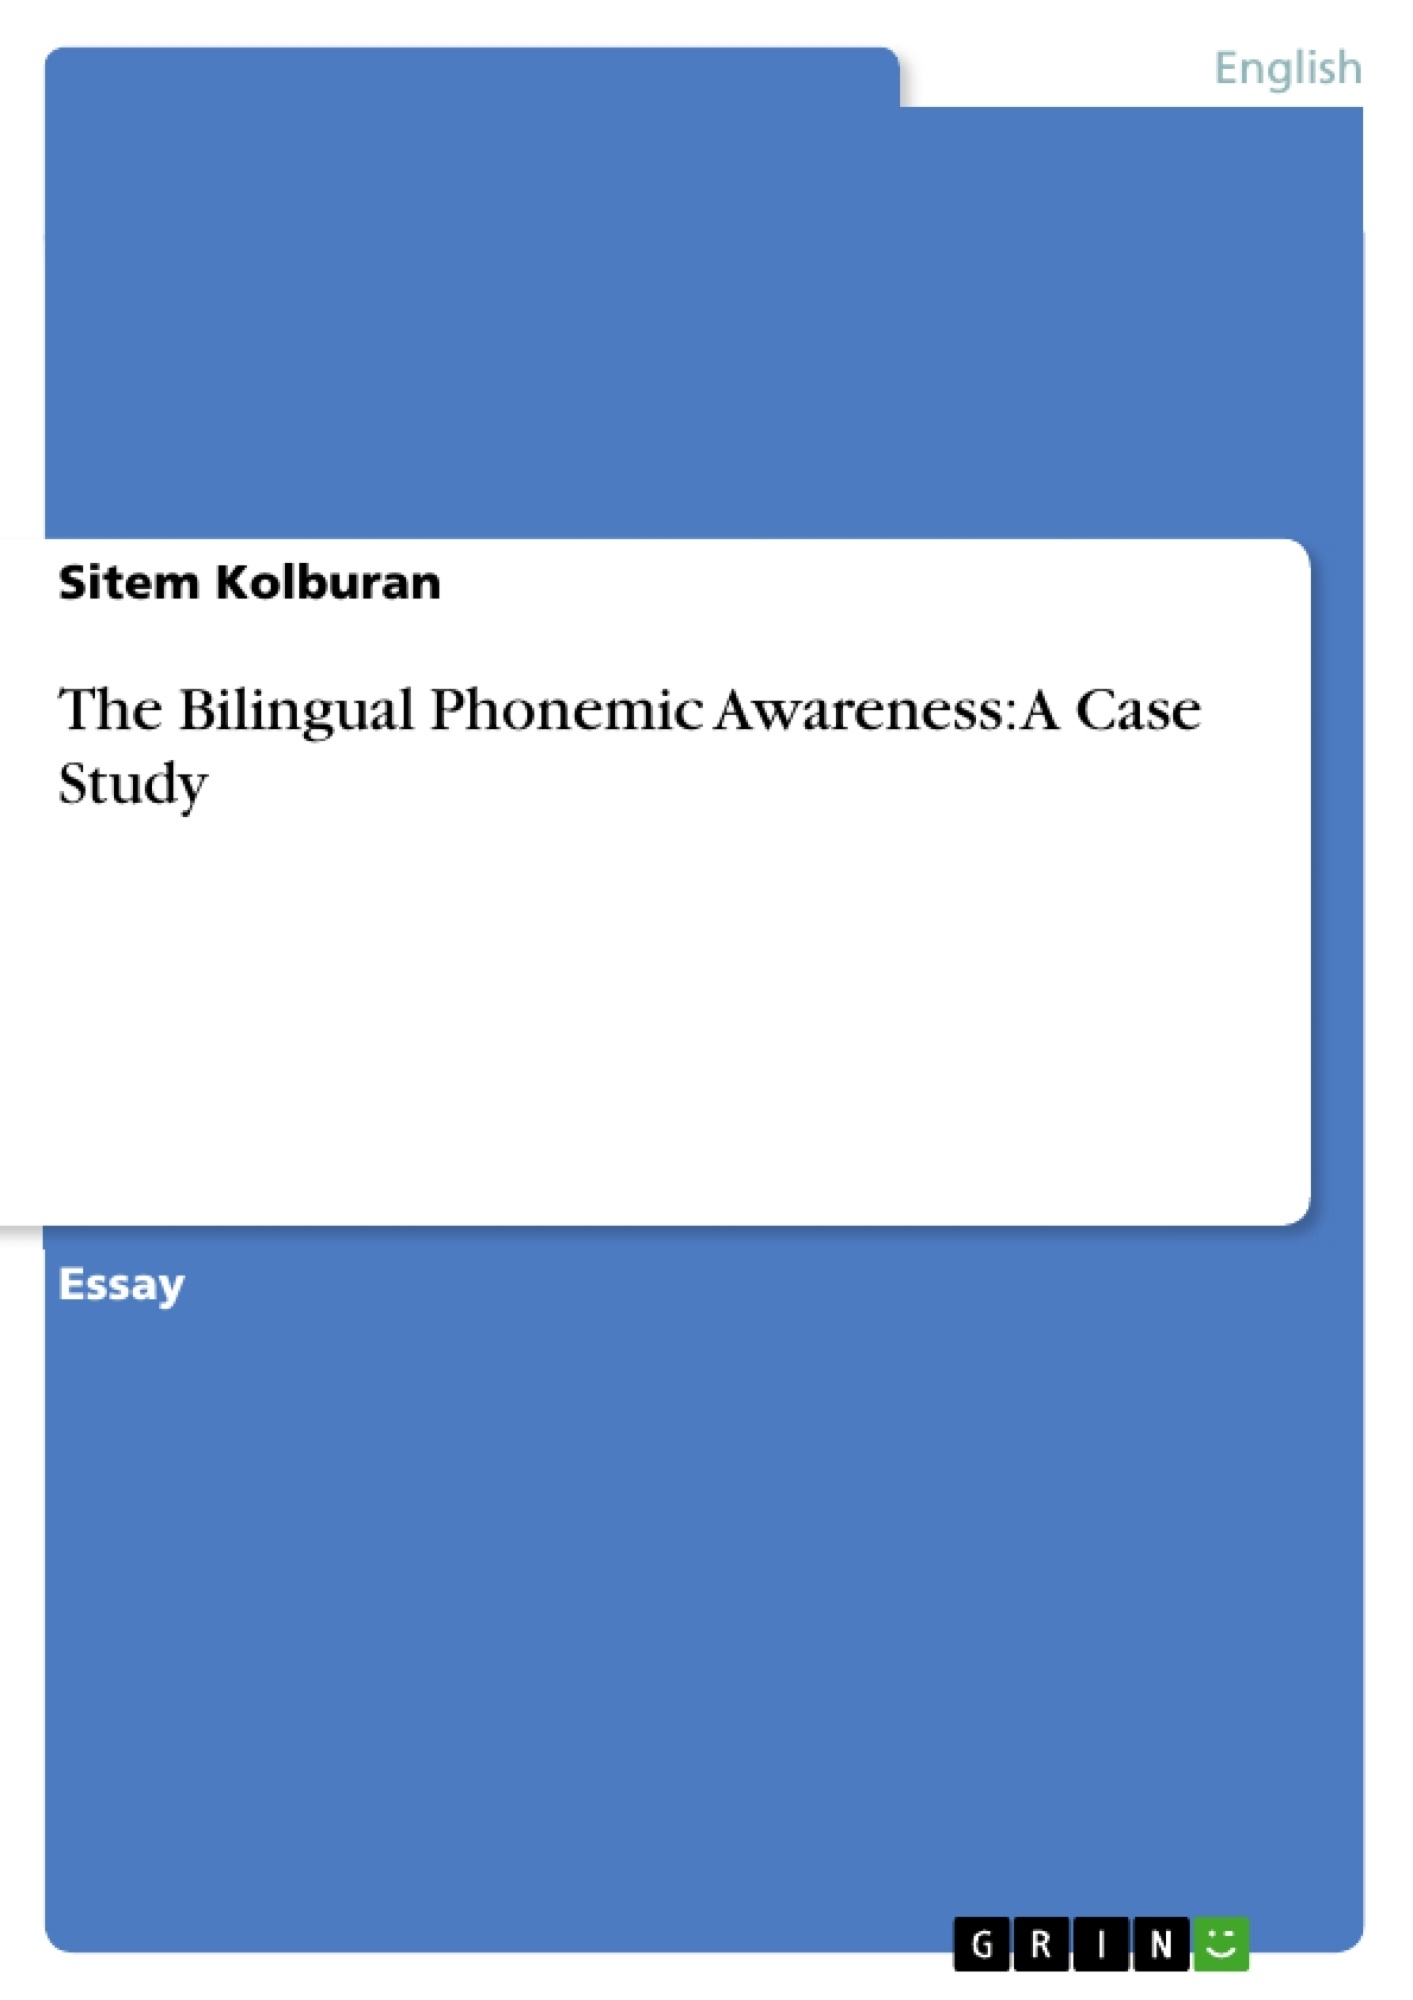 Title: The Bilingual Phonemic Awareness: A Case Study